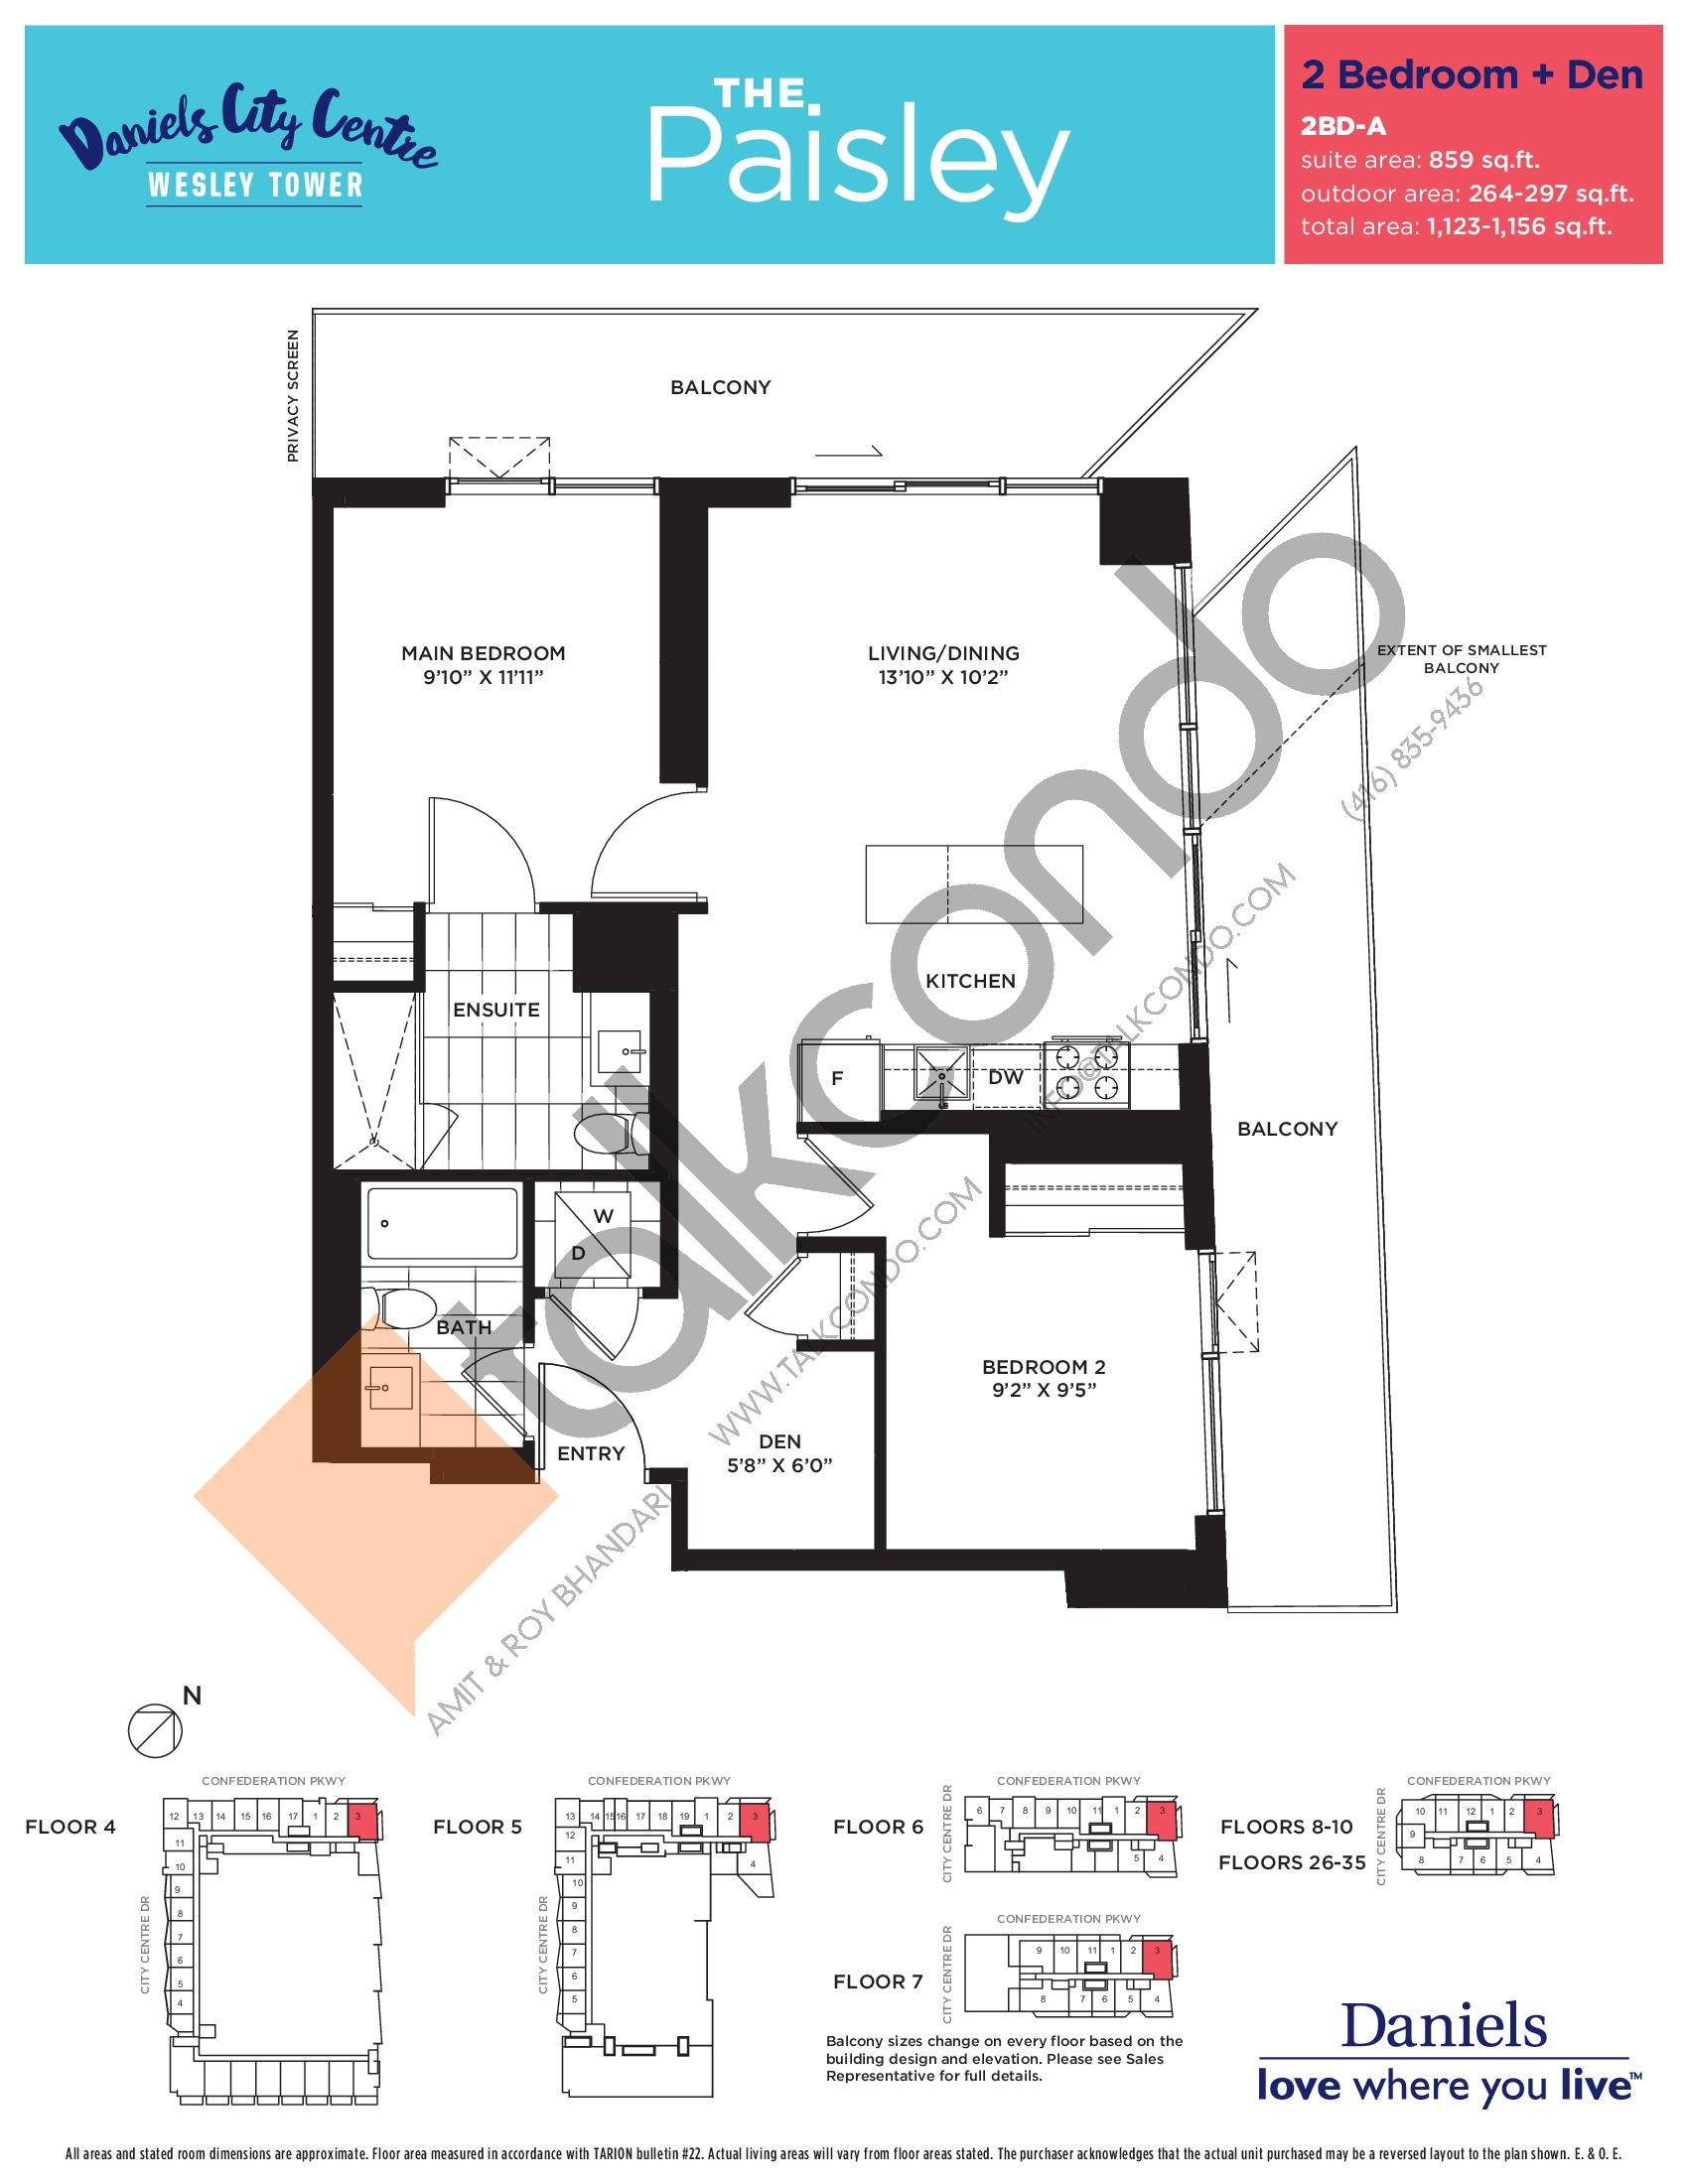 The Paisley Floor Plan at The Wesley Tower at Daniels City Centre Condos - 859 sq.ft